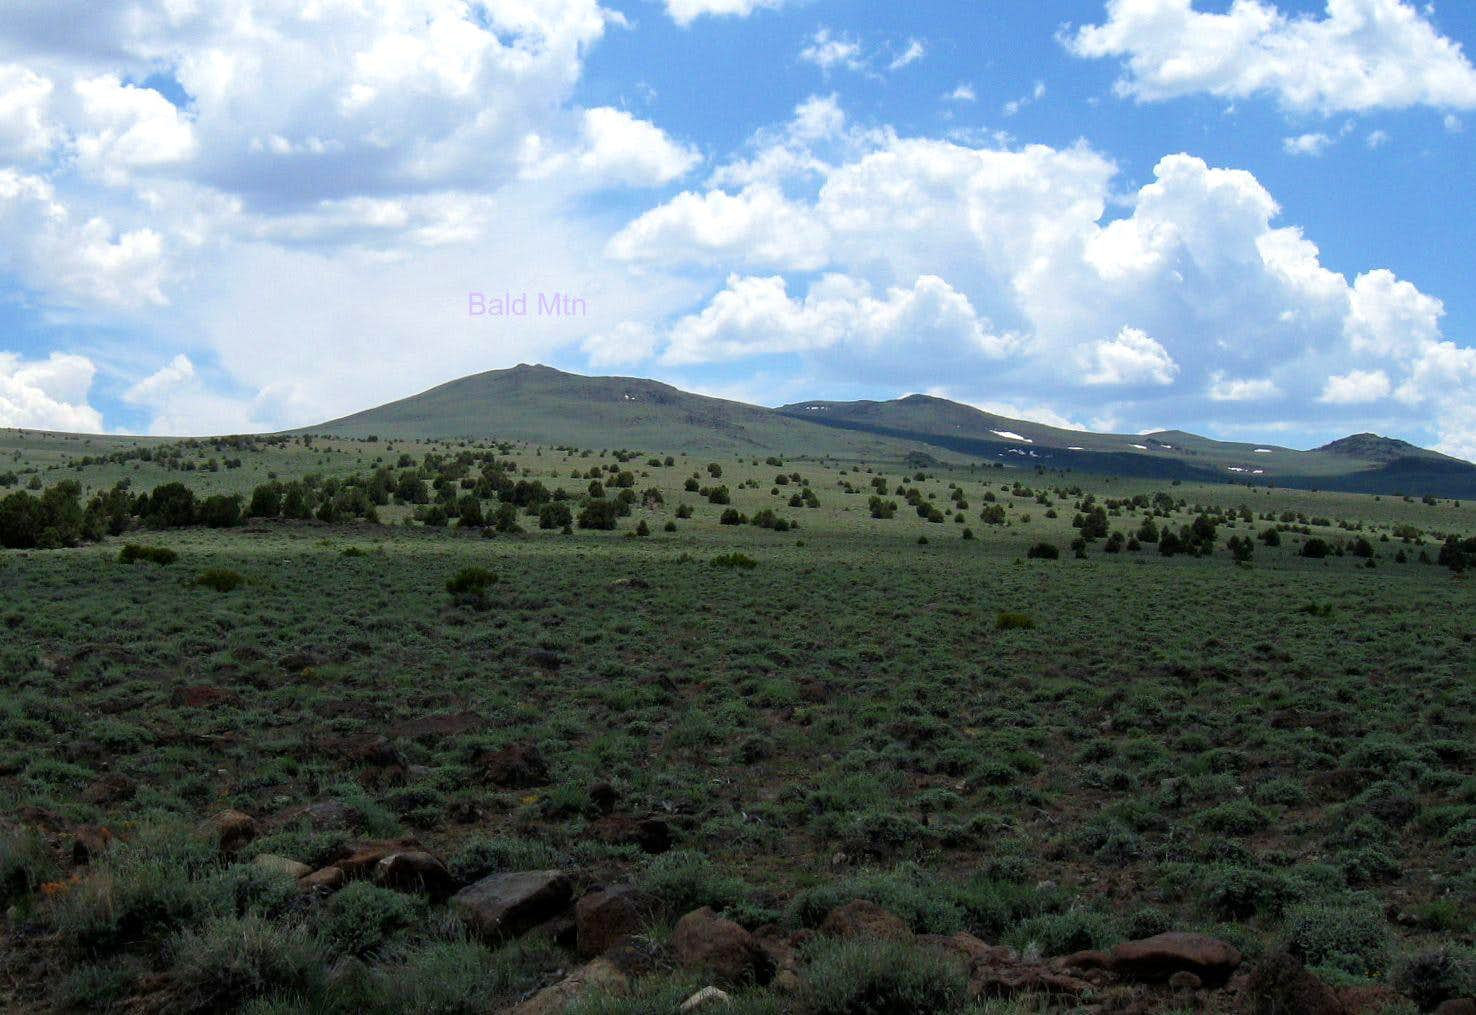 Bald Mountain (NV) Lyon County